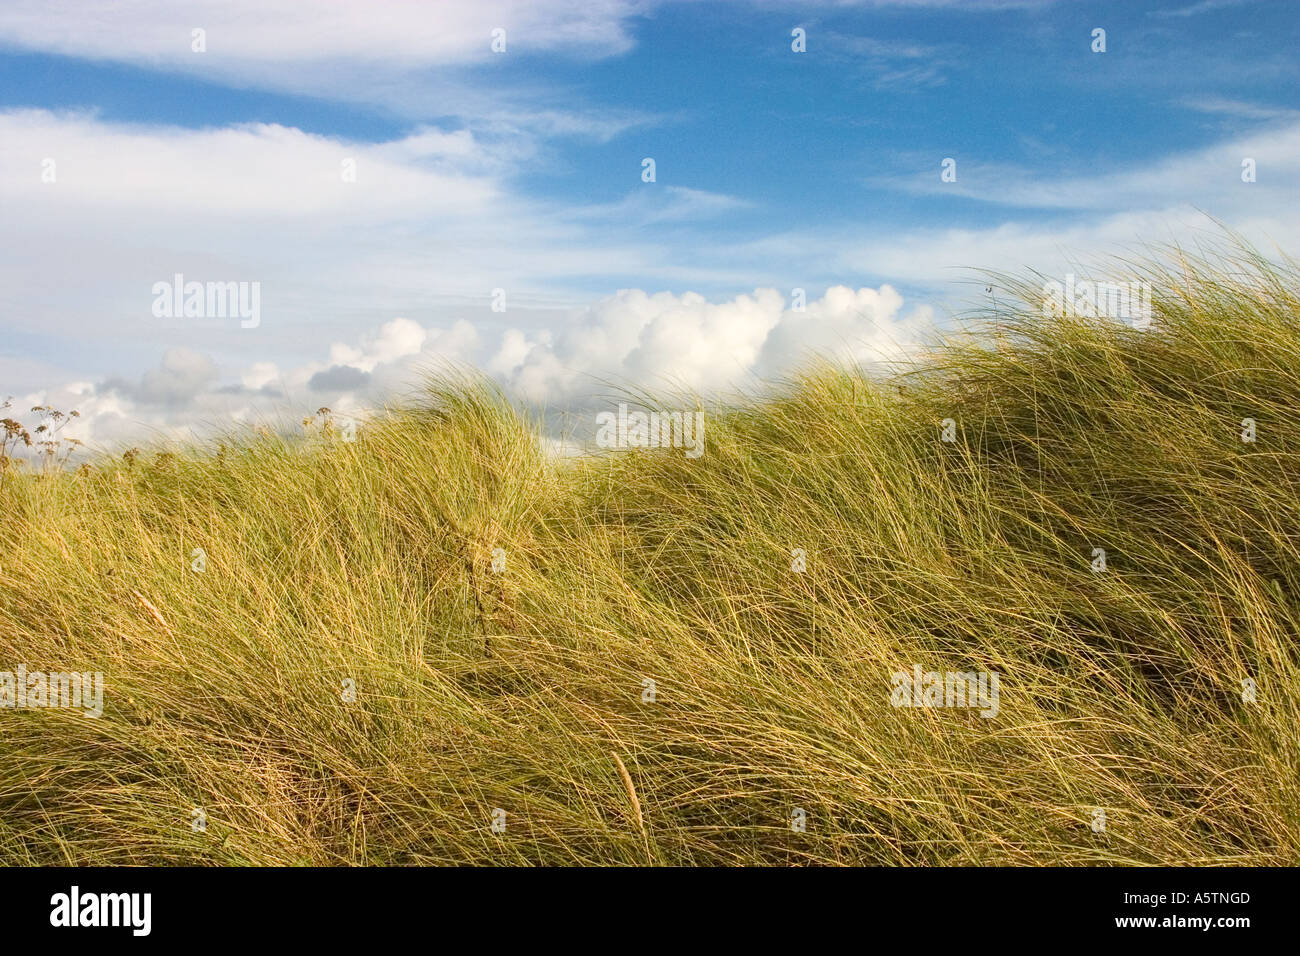 A shot of sand dunes on a breezy day. - Stock Image